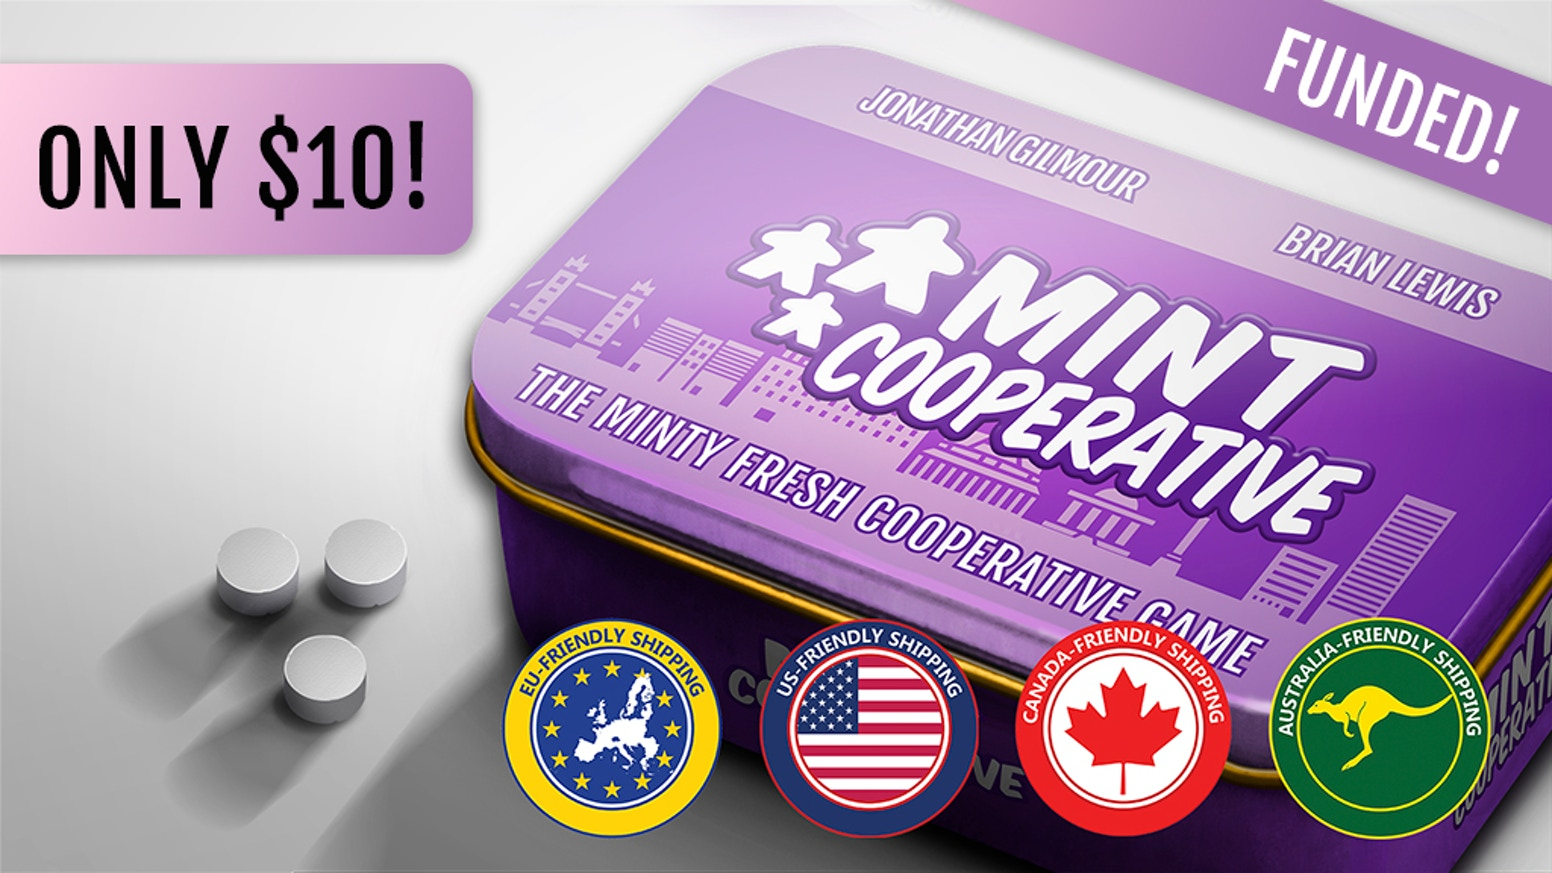 Mint Cooperative puts you and your fellow superheroes to work delivering the citizens of Mintopia from the threat of periodontal peril!